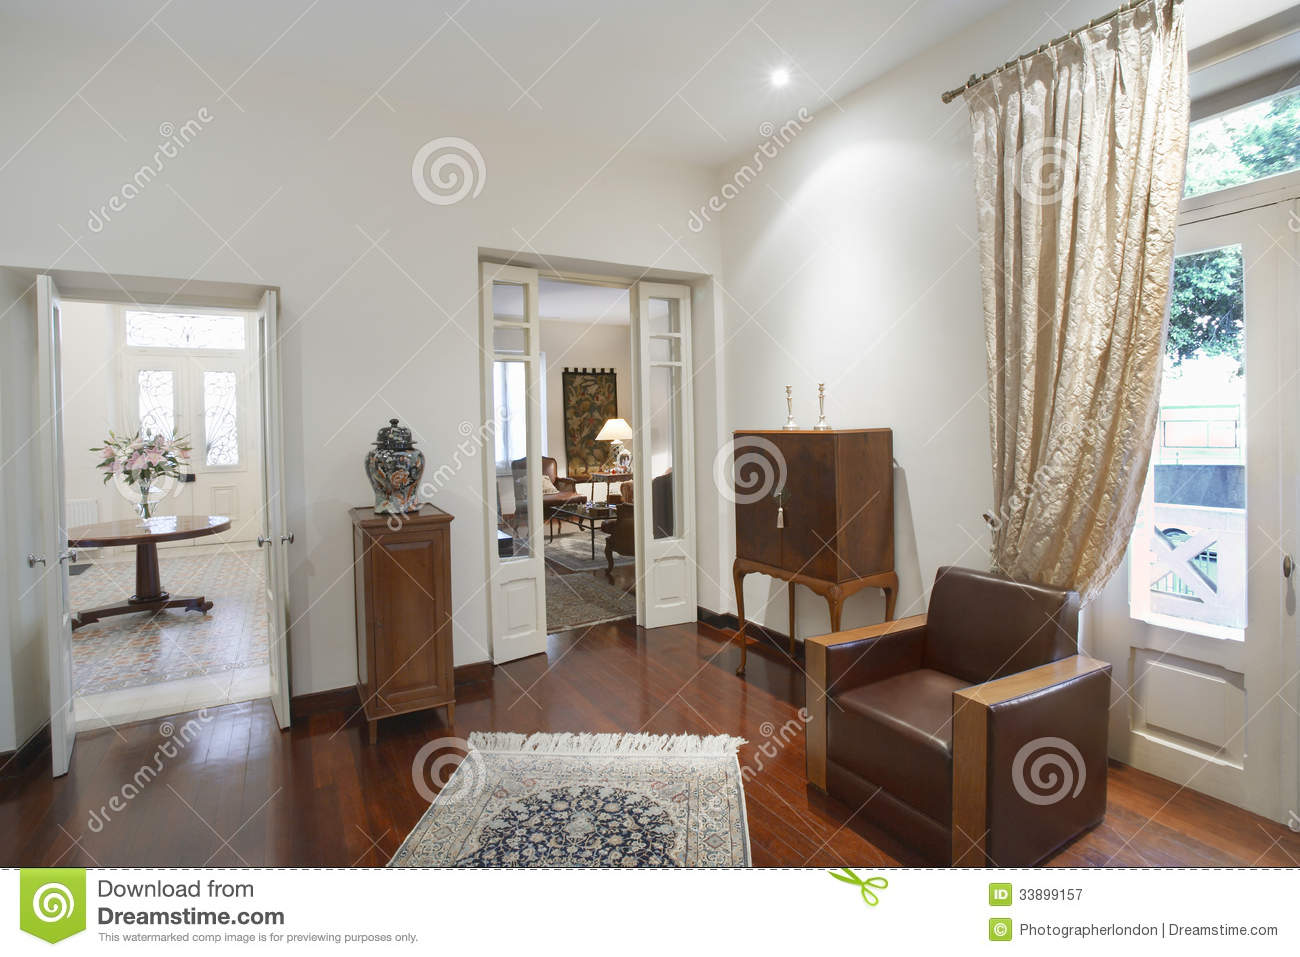 Living Room With Furniture In House Royalty Free Stock